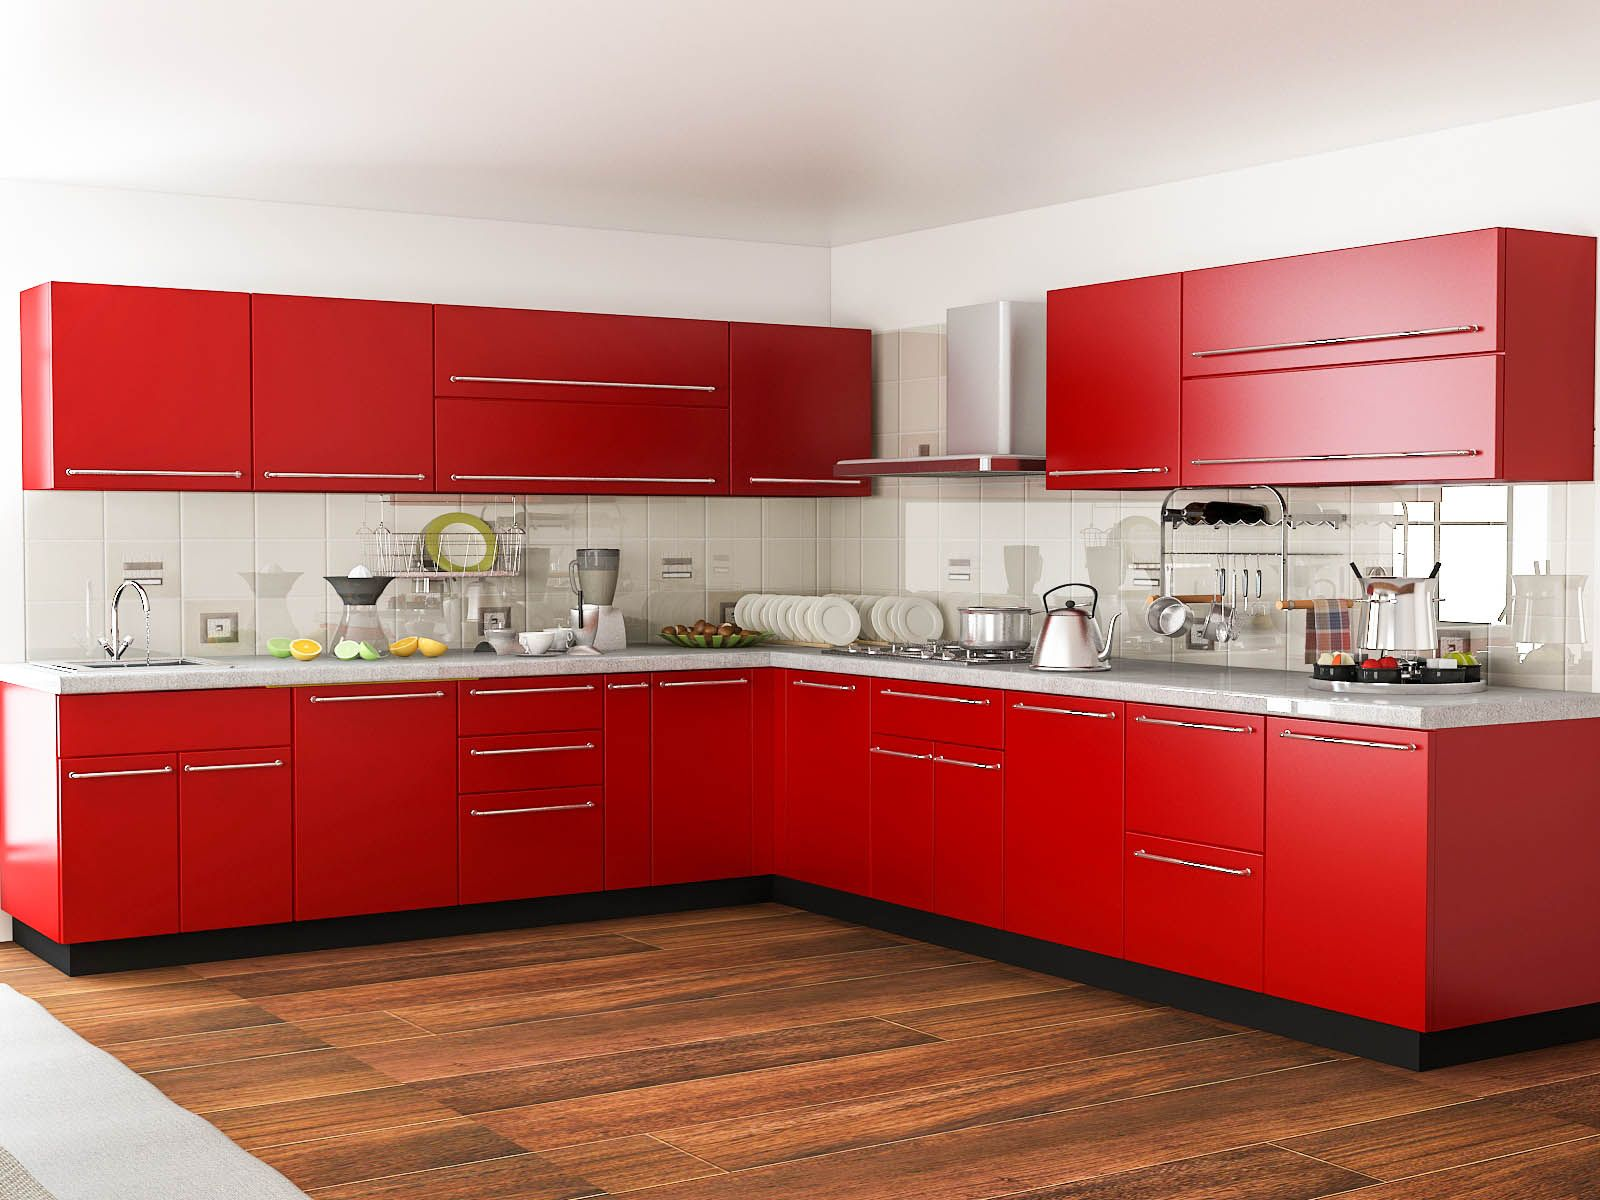 Red Kitchens Customfurnish L Shaped Red Kitchen  L Shaped Modular Kitchens